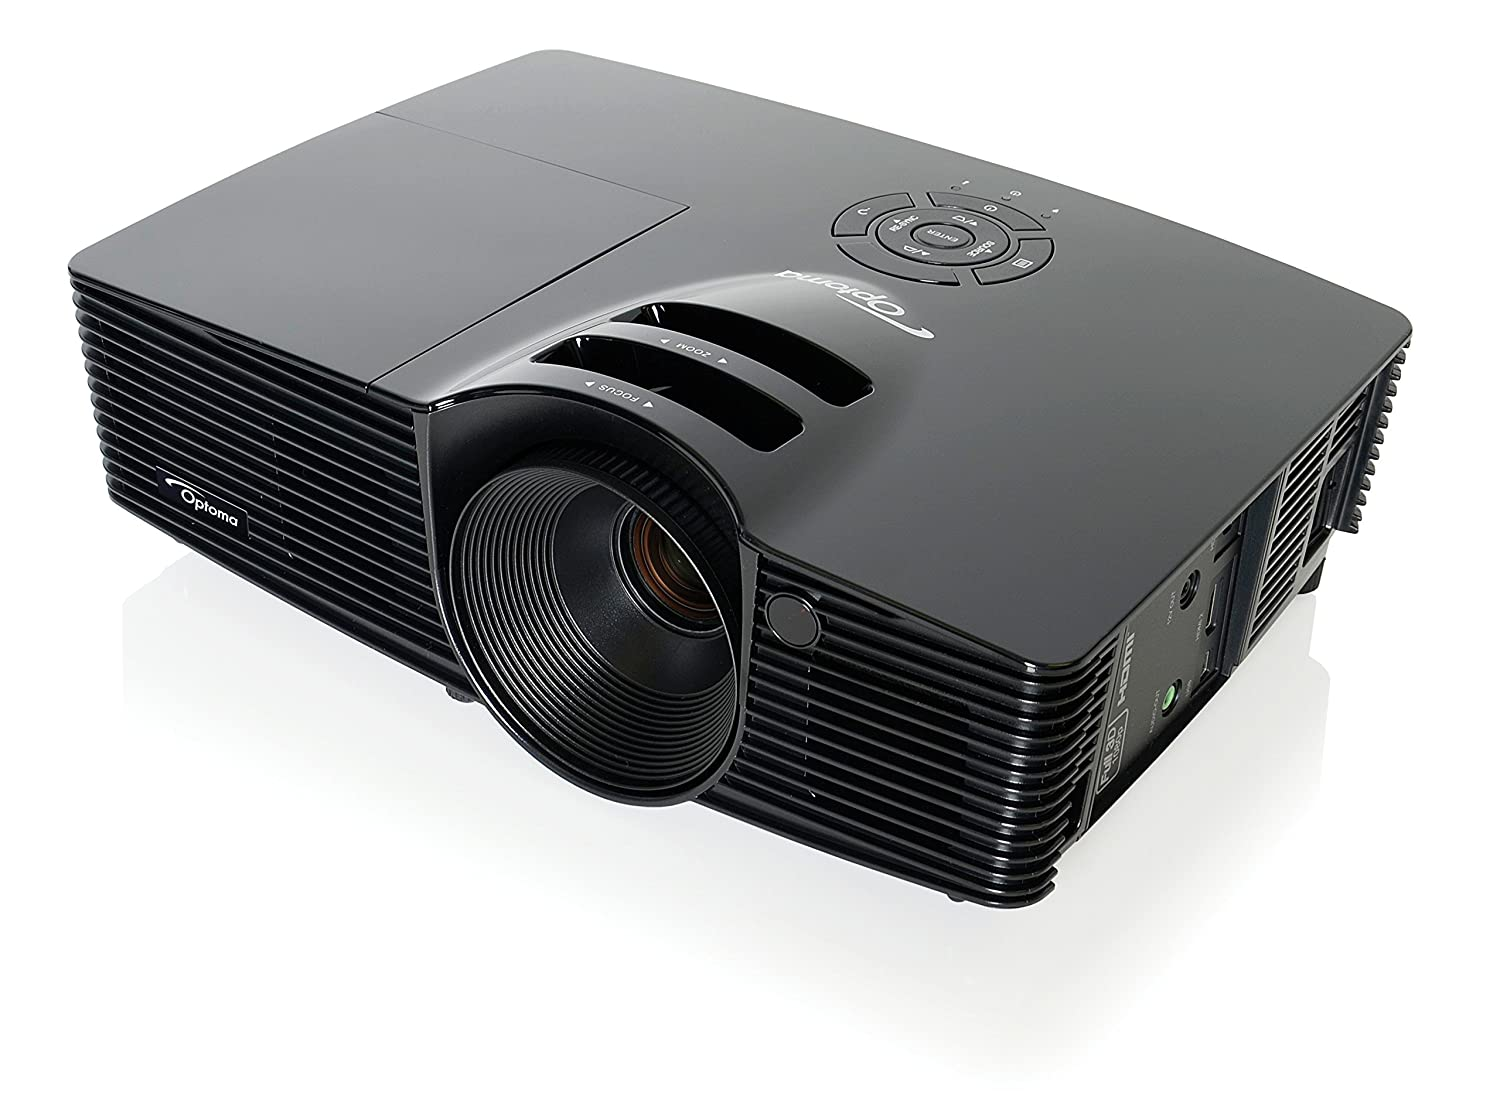 1. Optoma HD141X 1080p 3D DLP Home Theater Projector